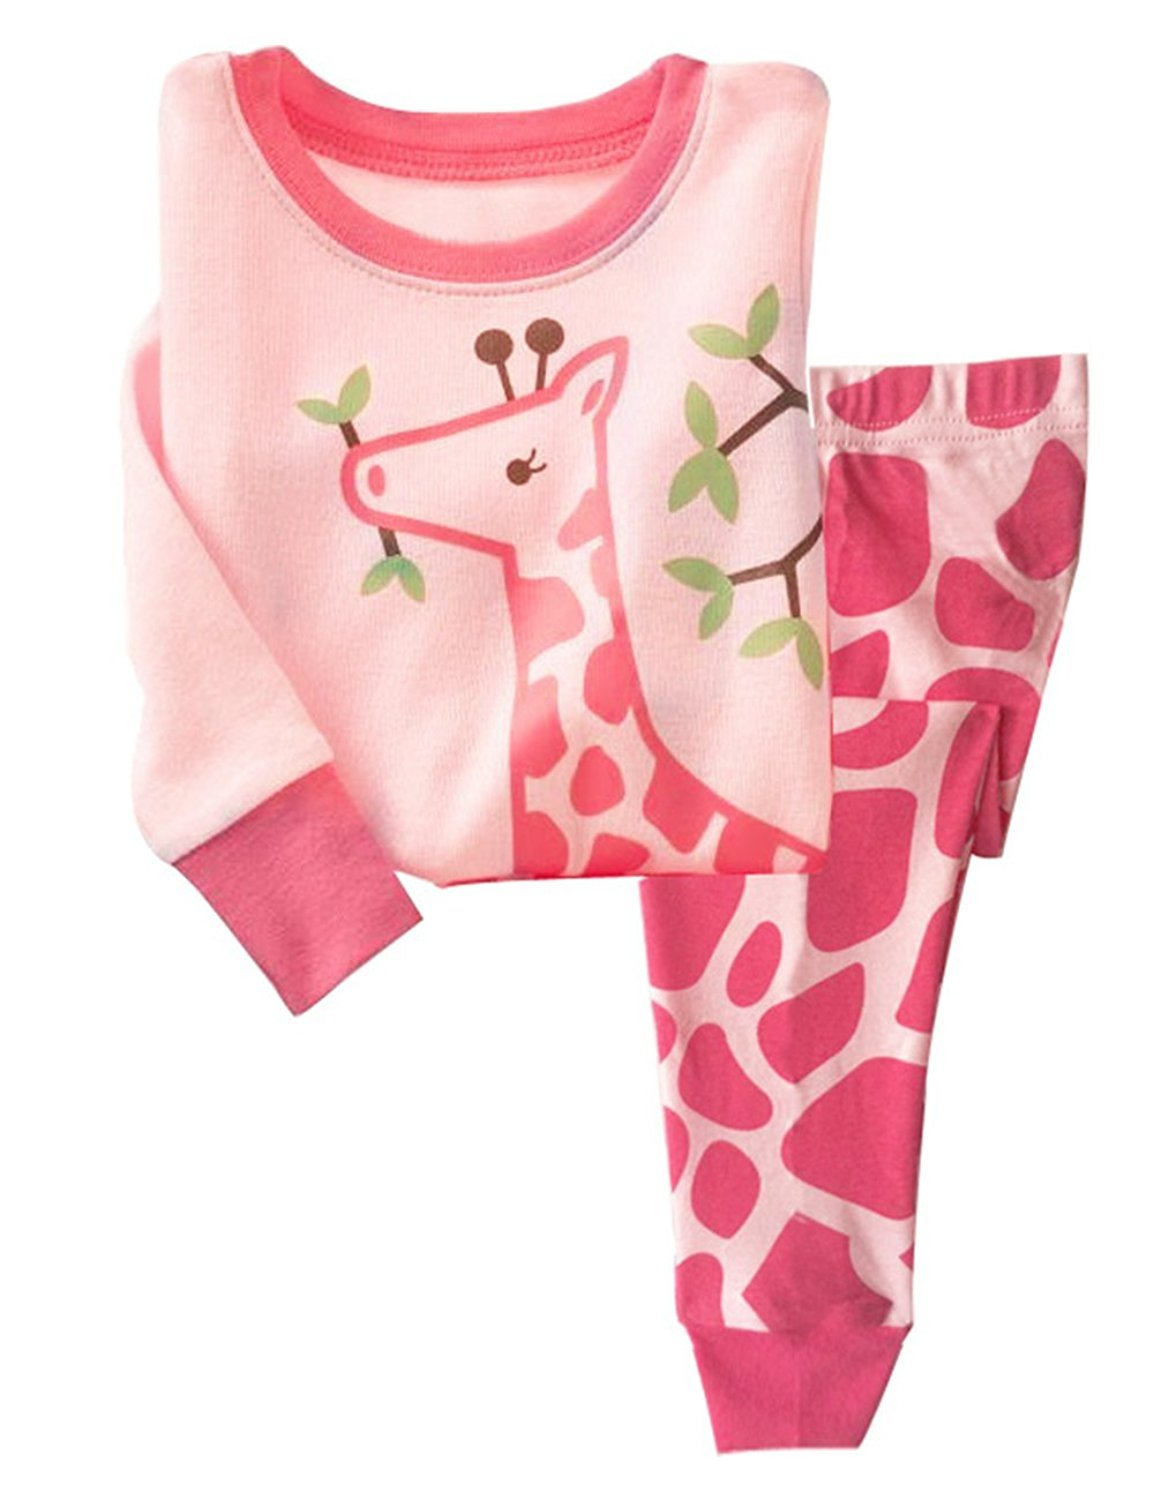 LitBud Girls Pajamas for Toddler Kids 100% Cotton Giraffe Nightwear Sleepwear Long Sleeve Pjs Set Size 2-3 Years 3T